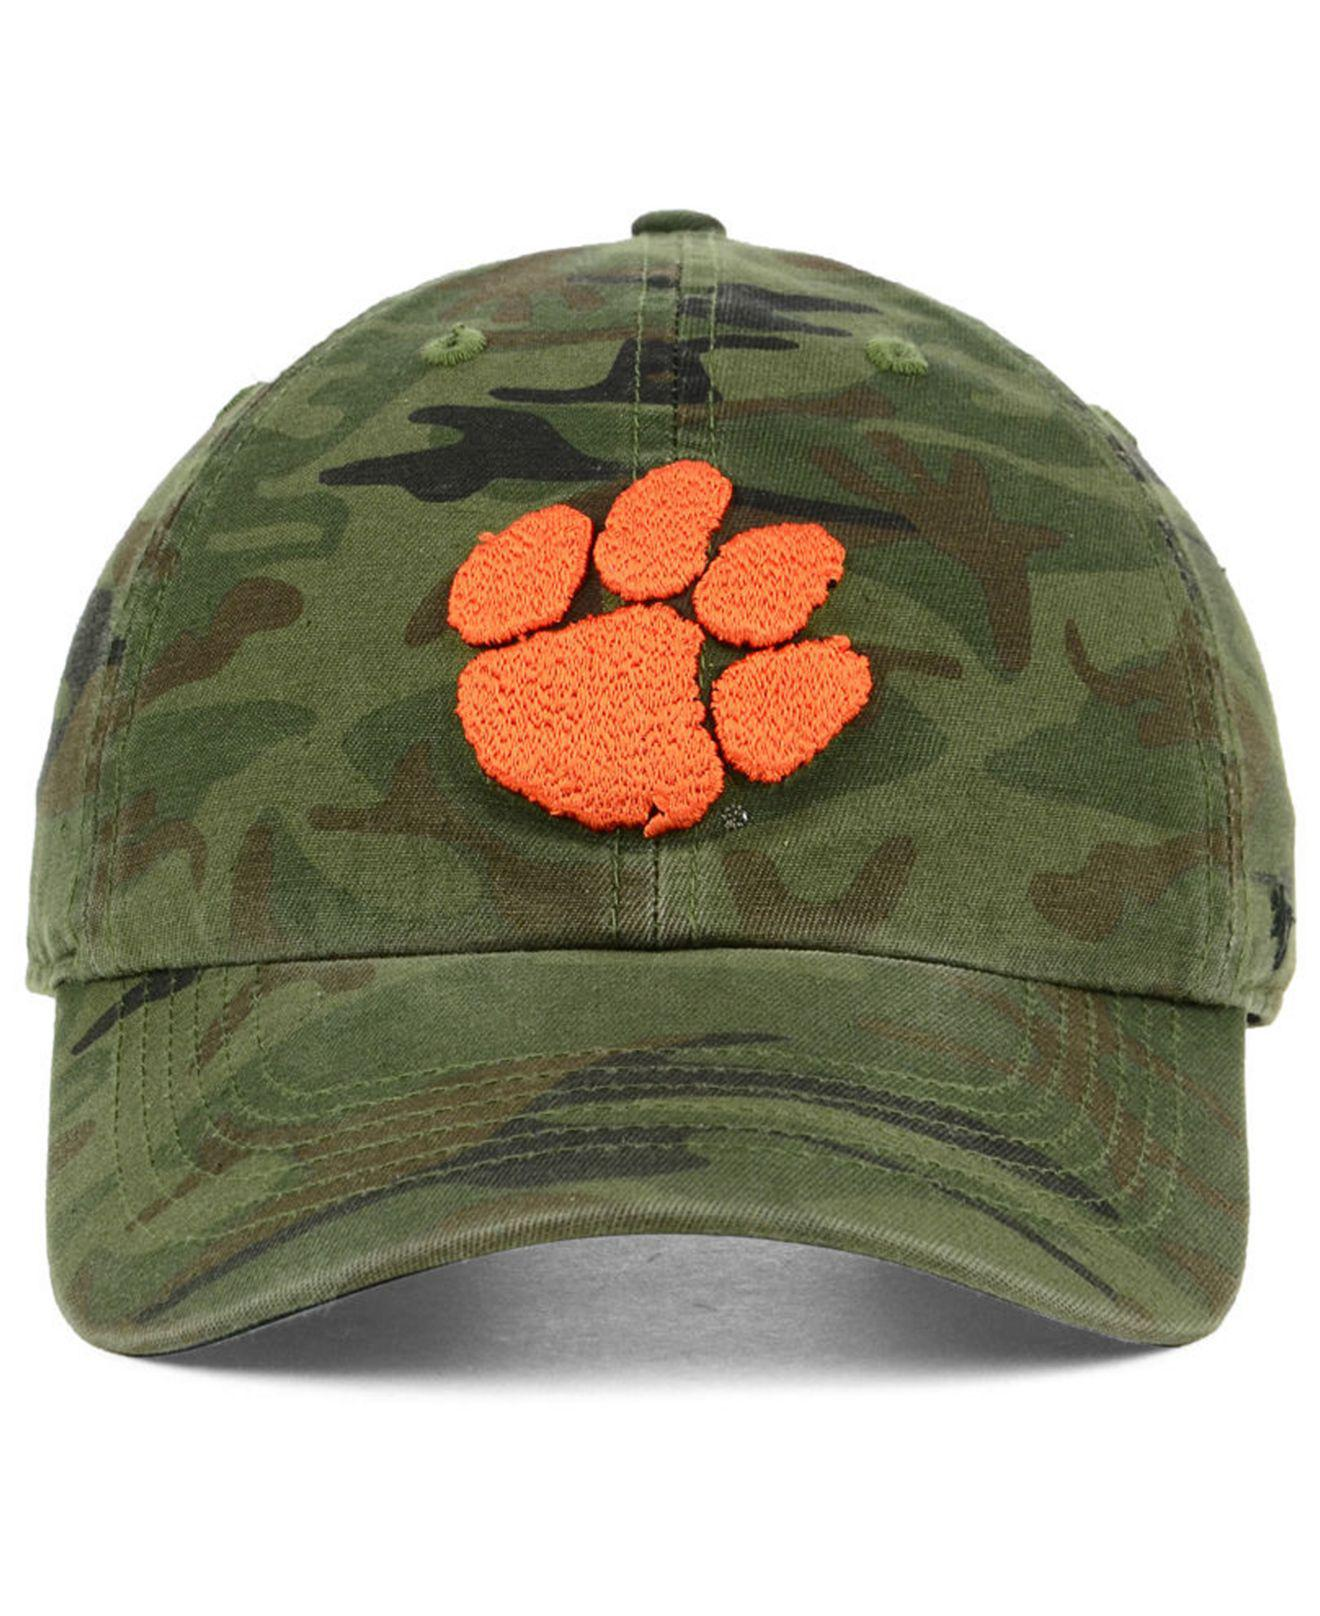 newest f35d8 06a94 Lyst - 47 Brand Clemson Tigers Regiment Clean Up Strapback Cap in Green for  Men